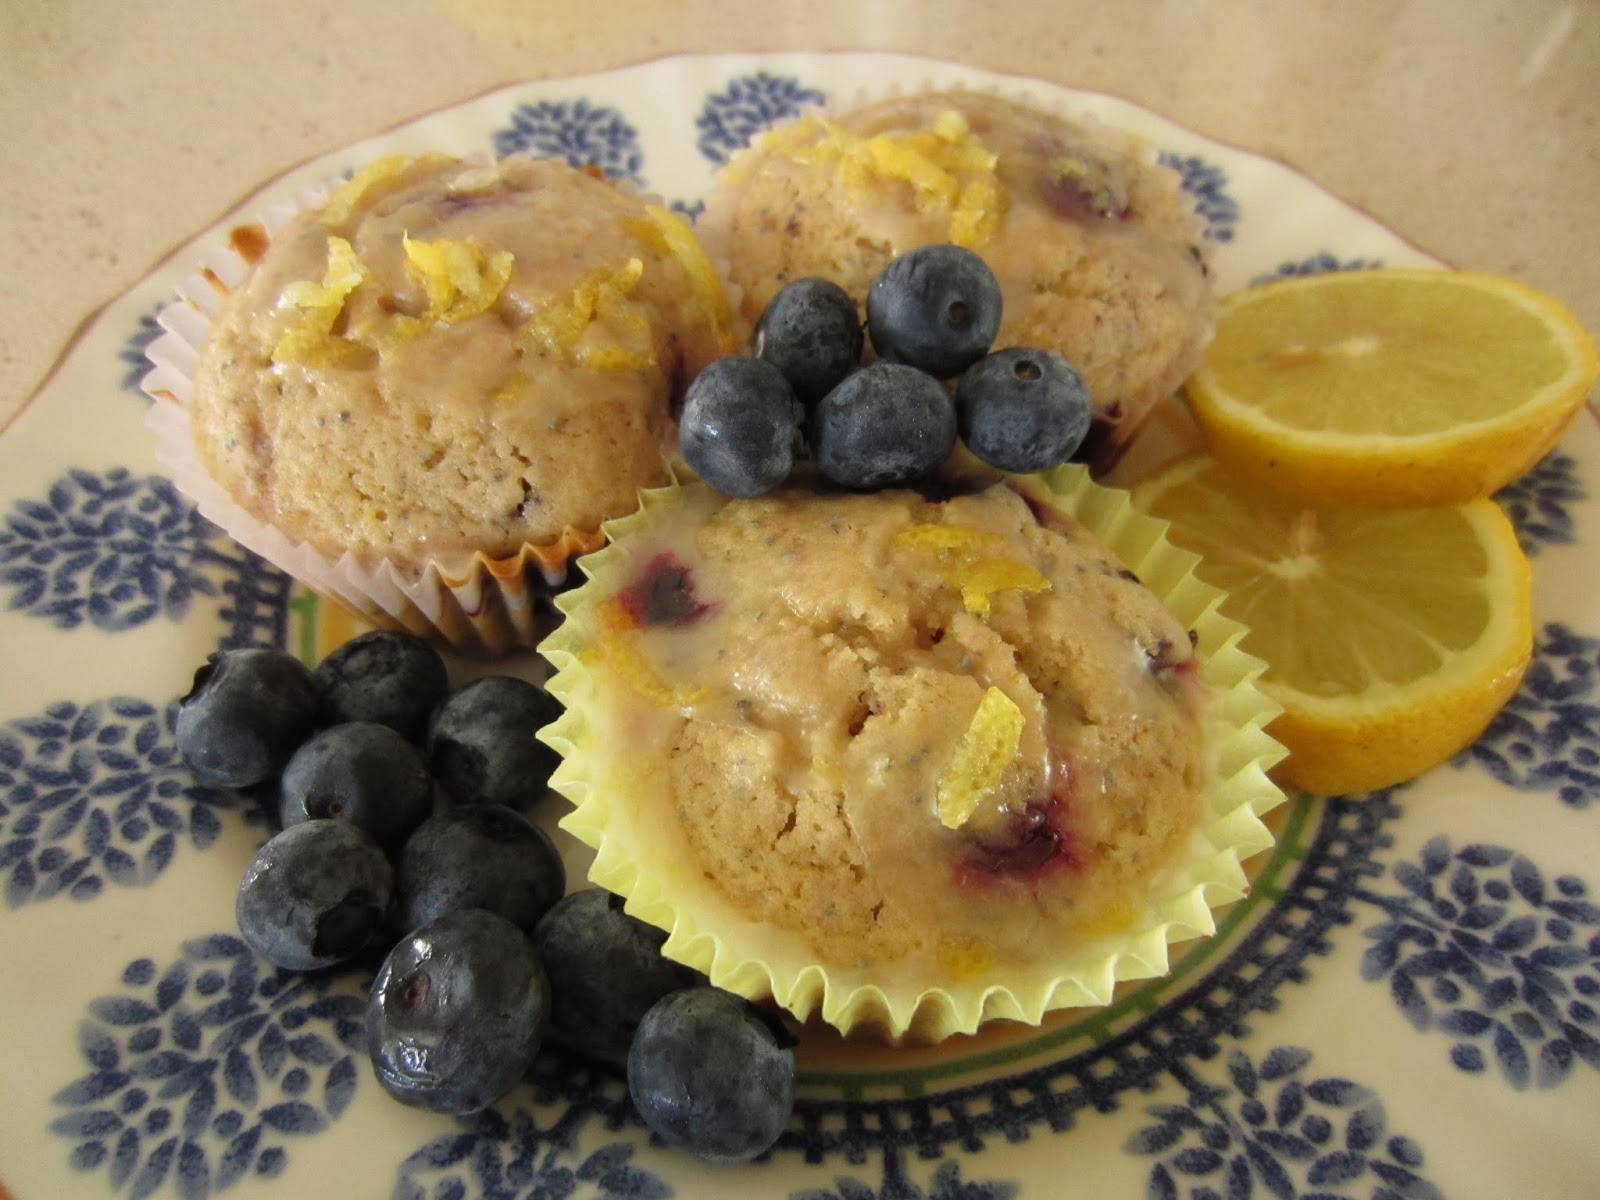 Sisters Do Food and Fitness: Blueberry Lemon Poppy Seed Muffins